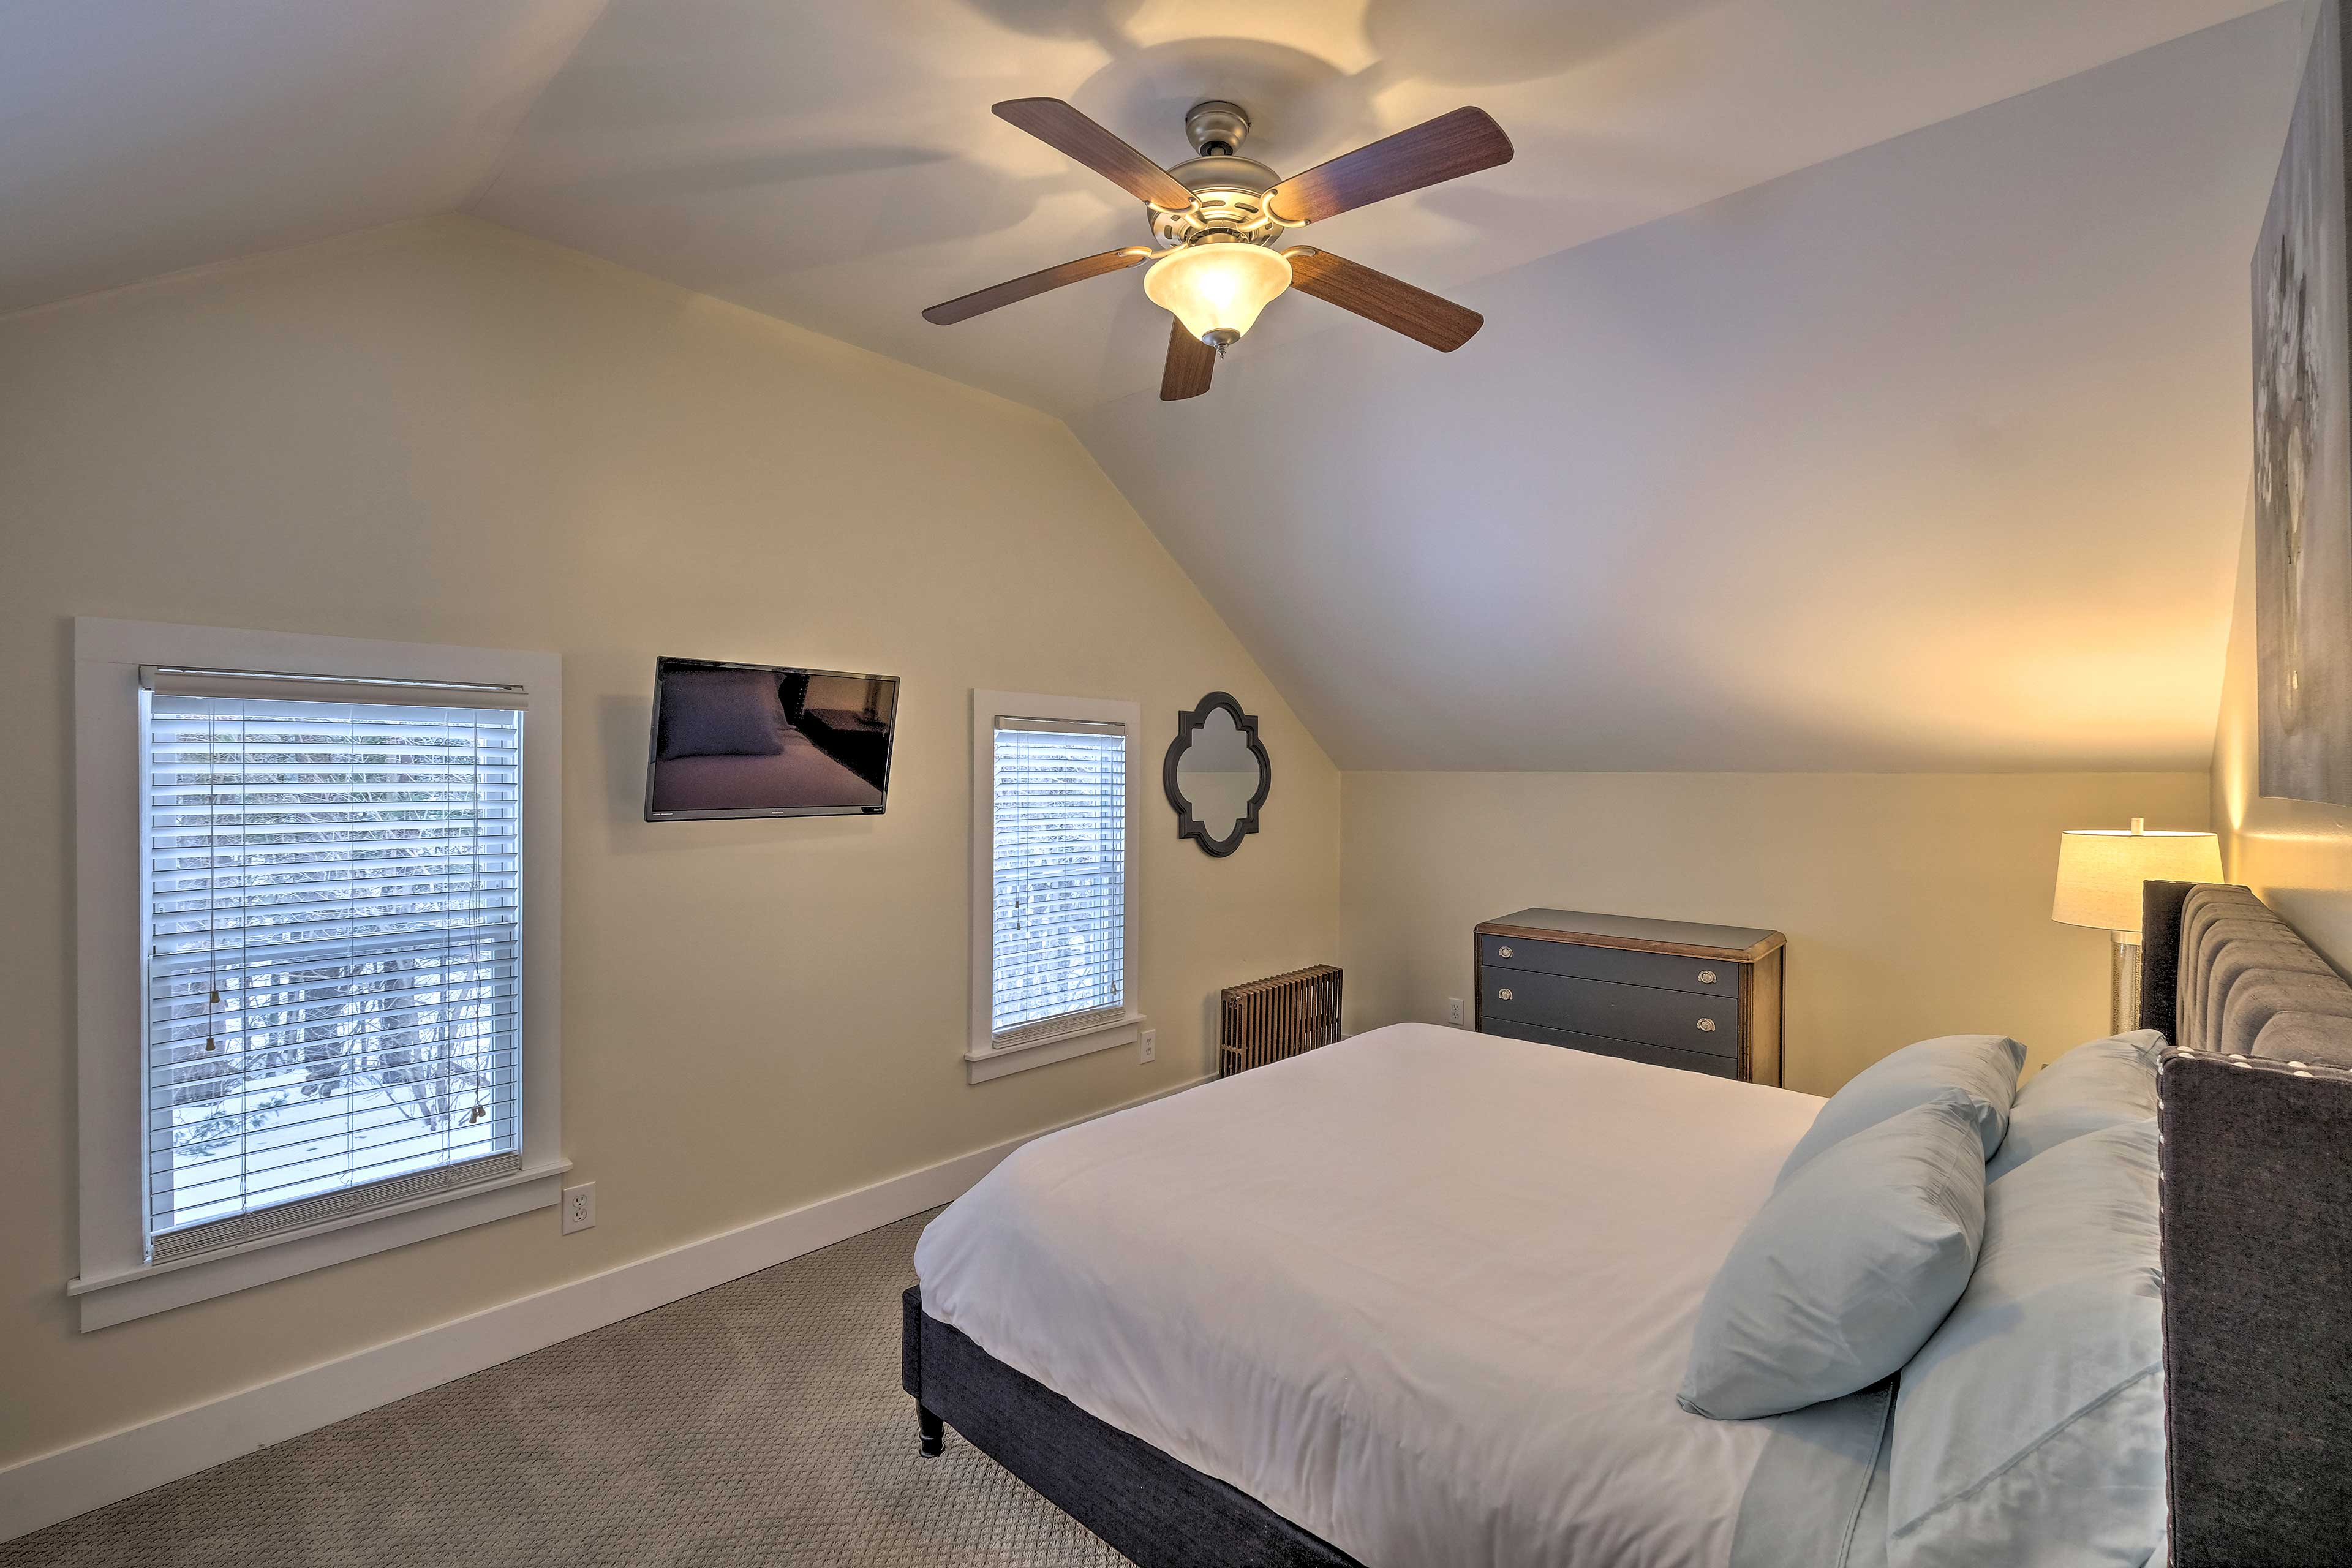 Each bedroom is equipped with a TV, great for early mornings and late nights!